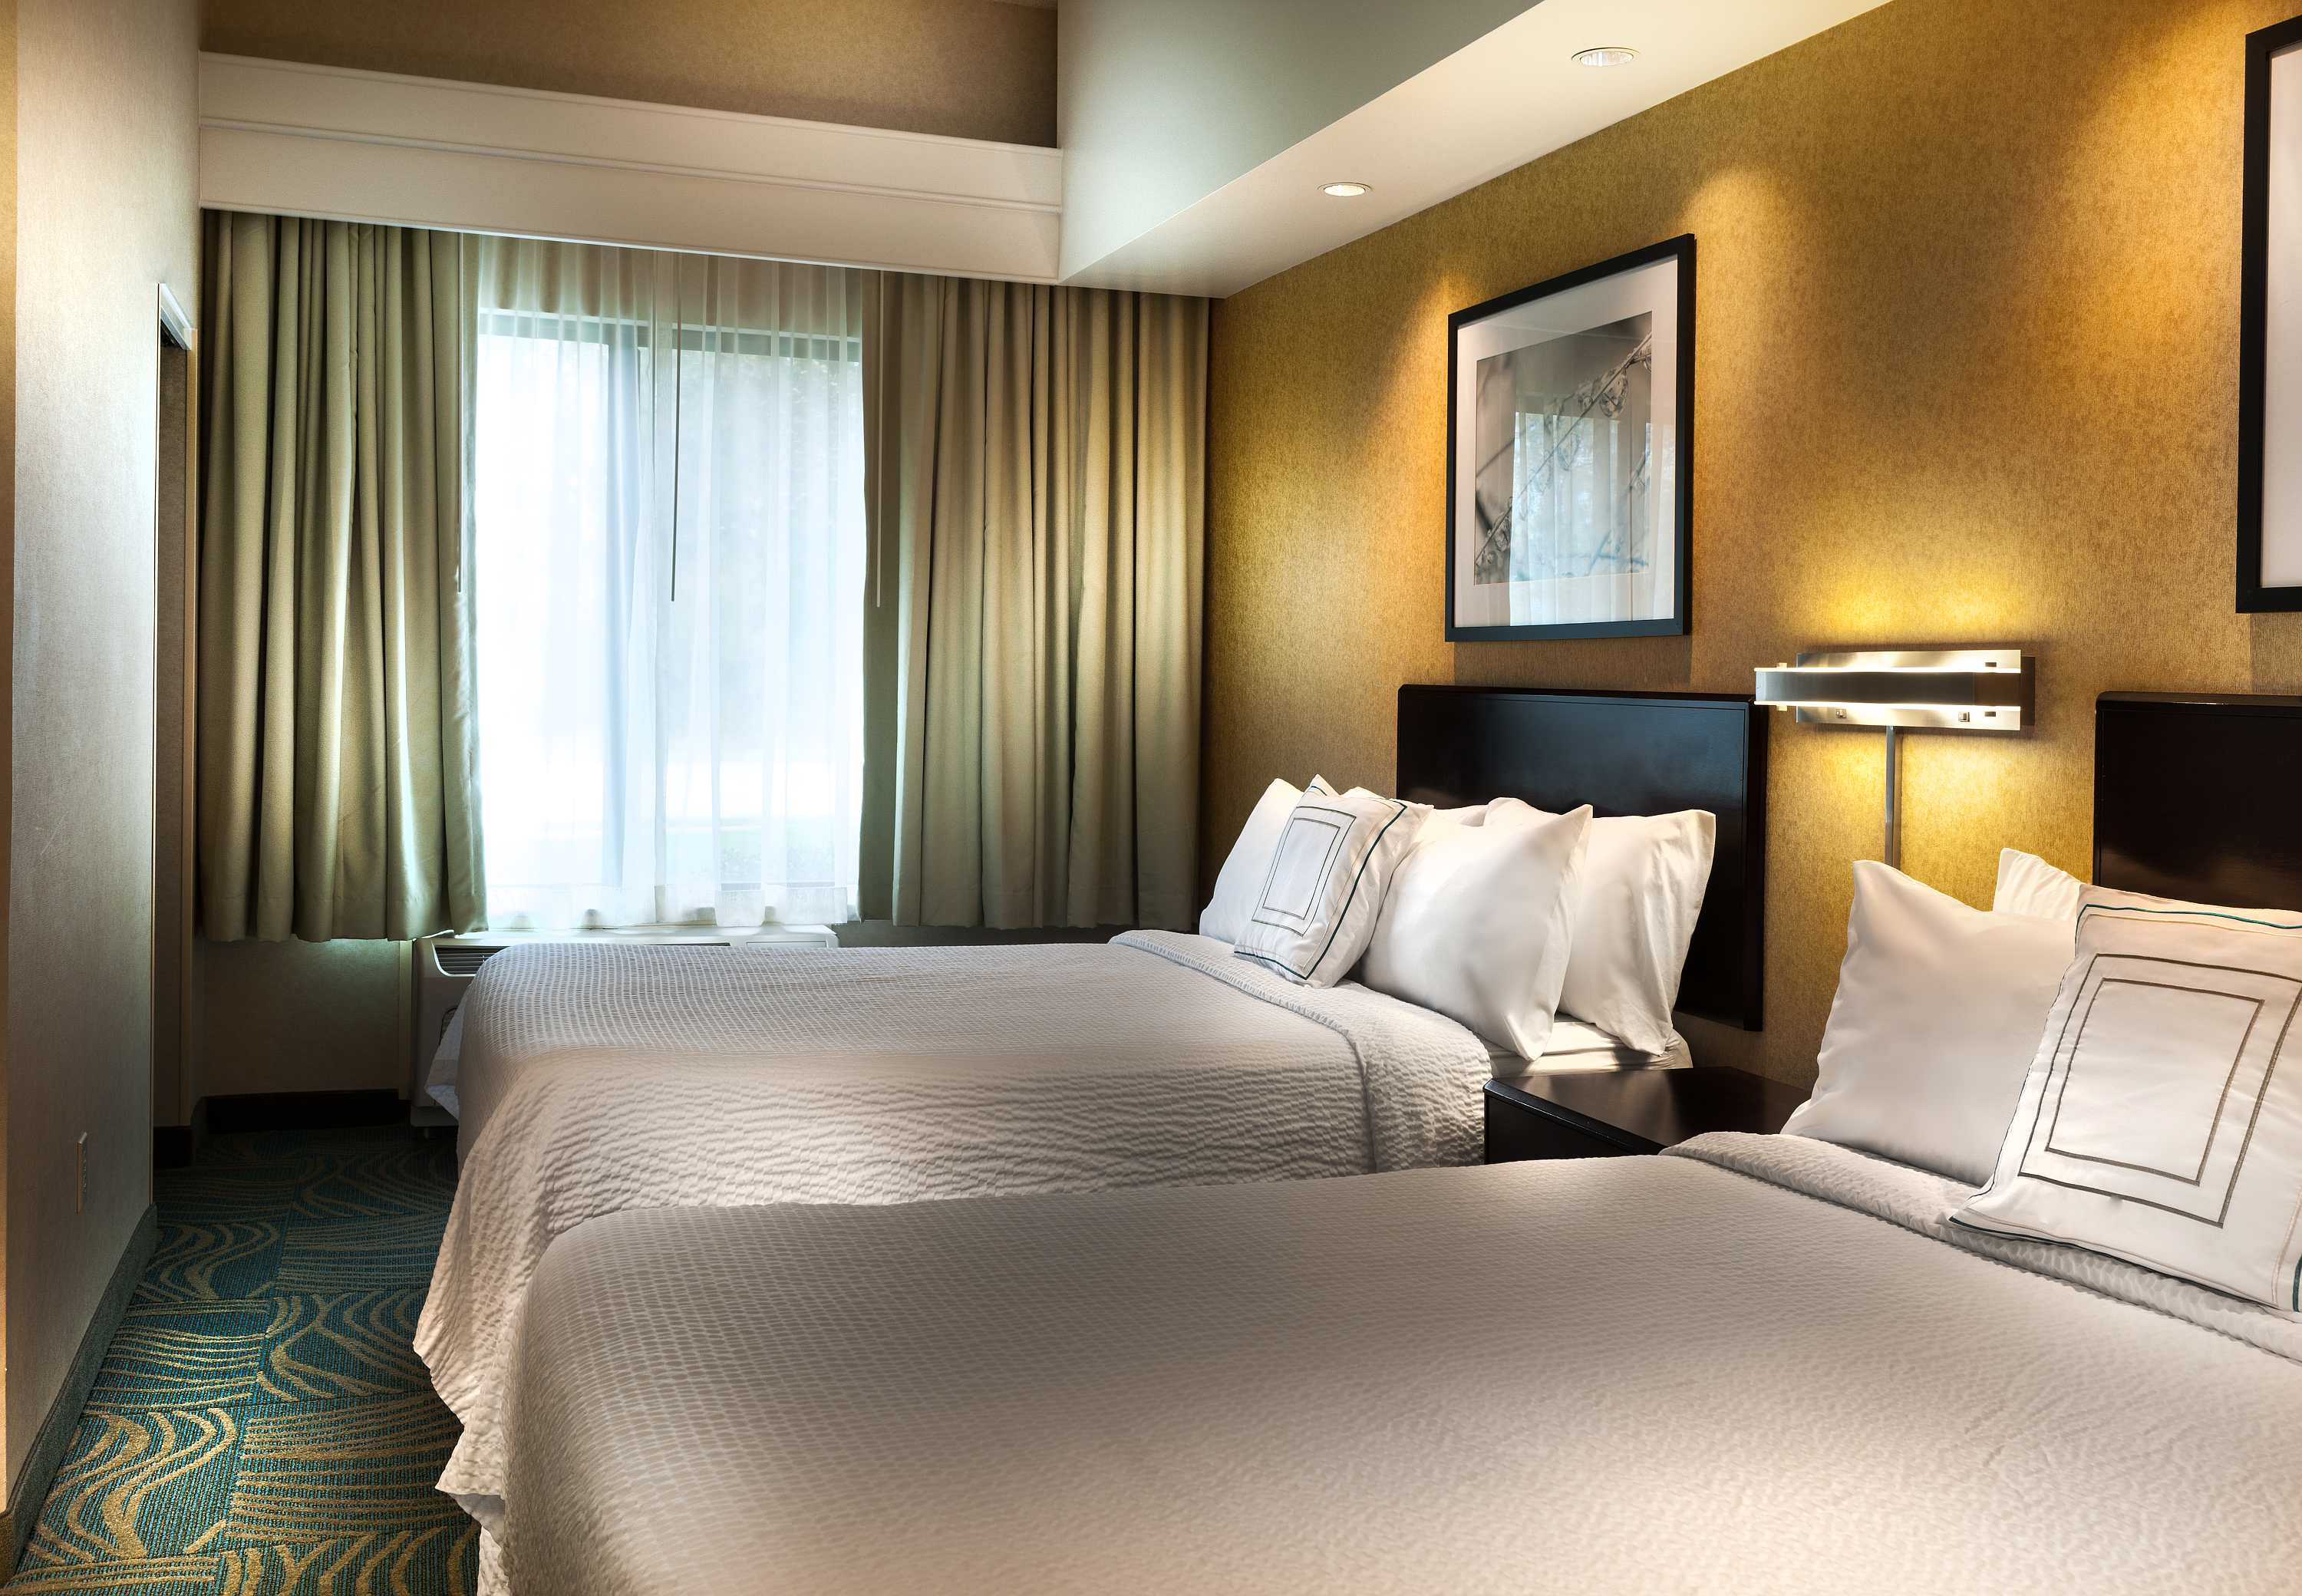 SpringHill Suites by Marriott Dallas DFW Airport North/Grapevine image 11